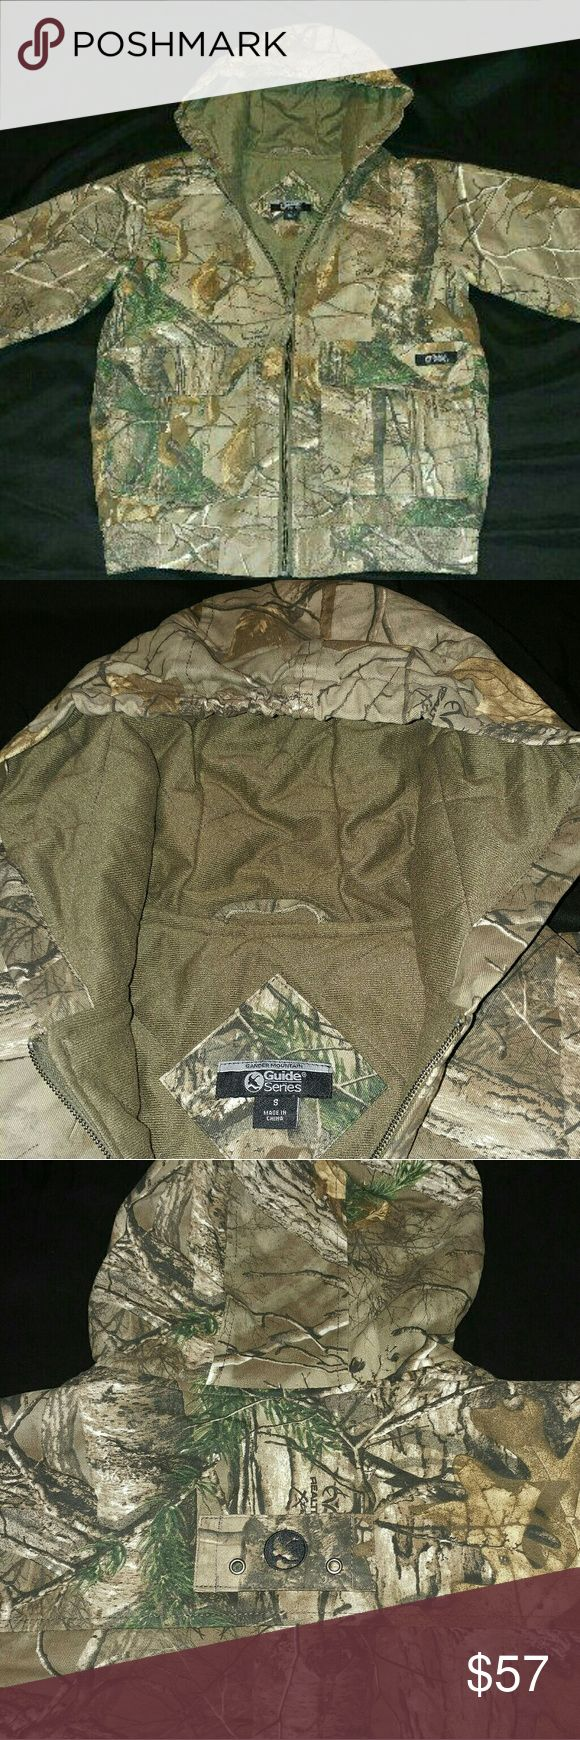 Gander mountain real tree hunting coat Warm!!! Compares to a carhart, excellent condition basically brand new!! Smoke and pet free home.  Fast shipping. Gander Mountain Jackets & Coats